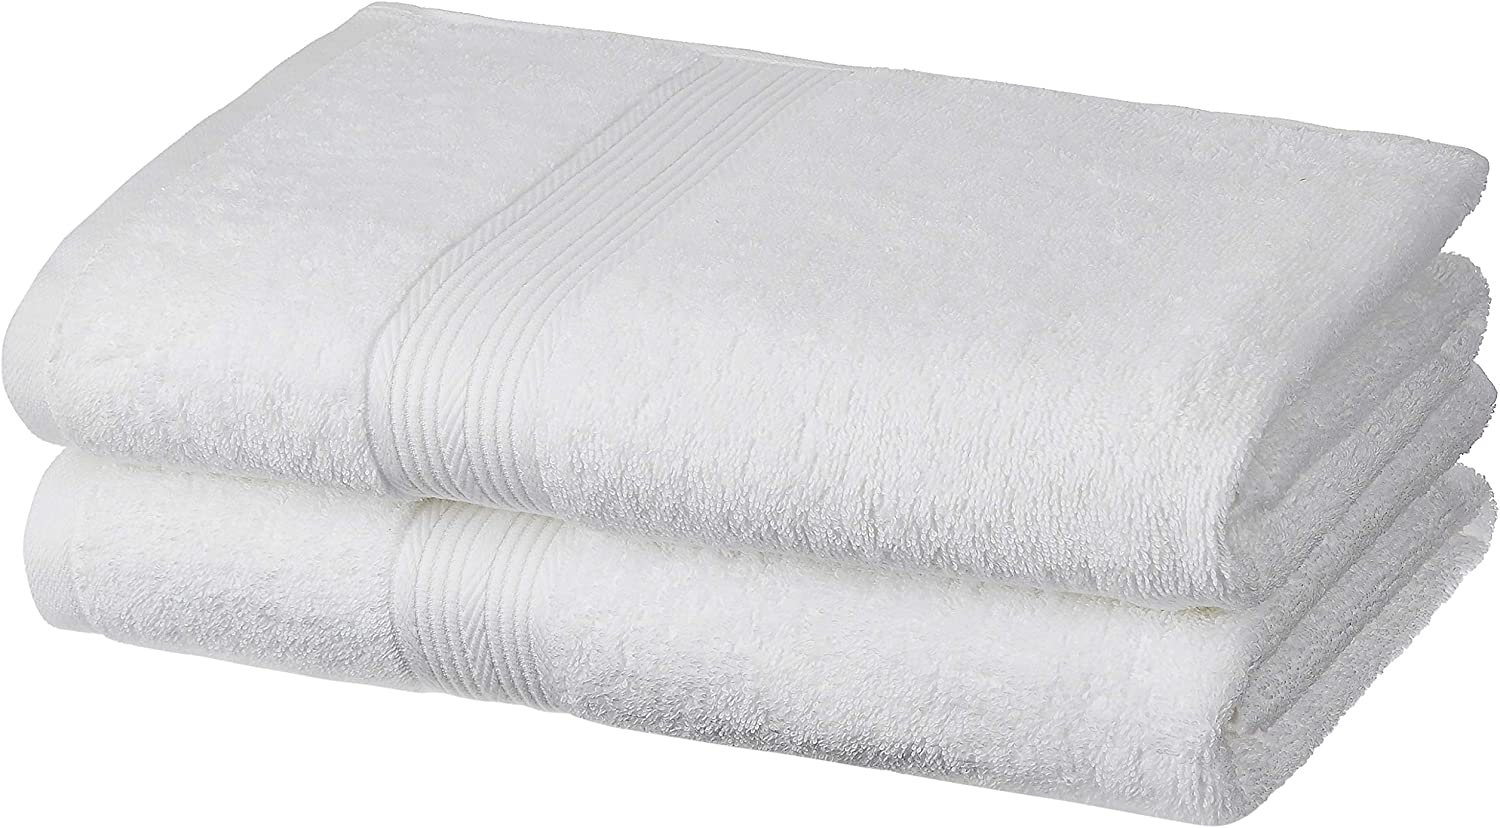 Amazon Brand - Solimo 100% Cotton 2 Piece Bath Towel Set, 500 GSM (White)